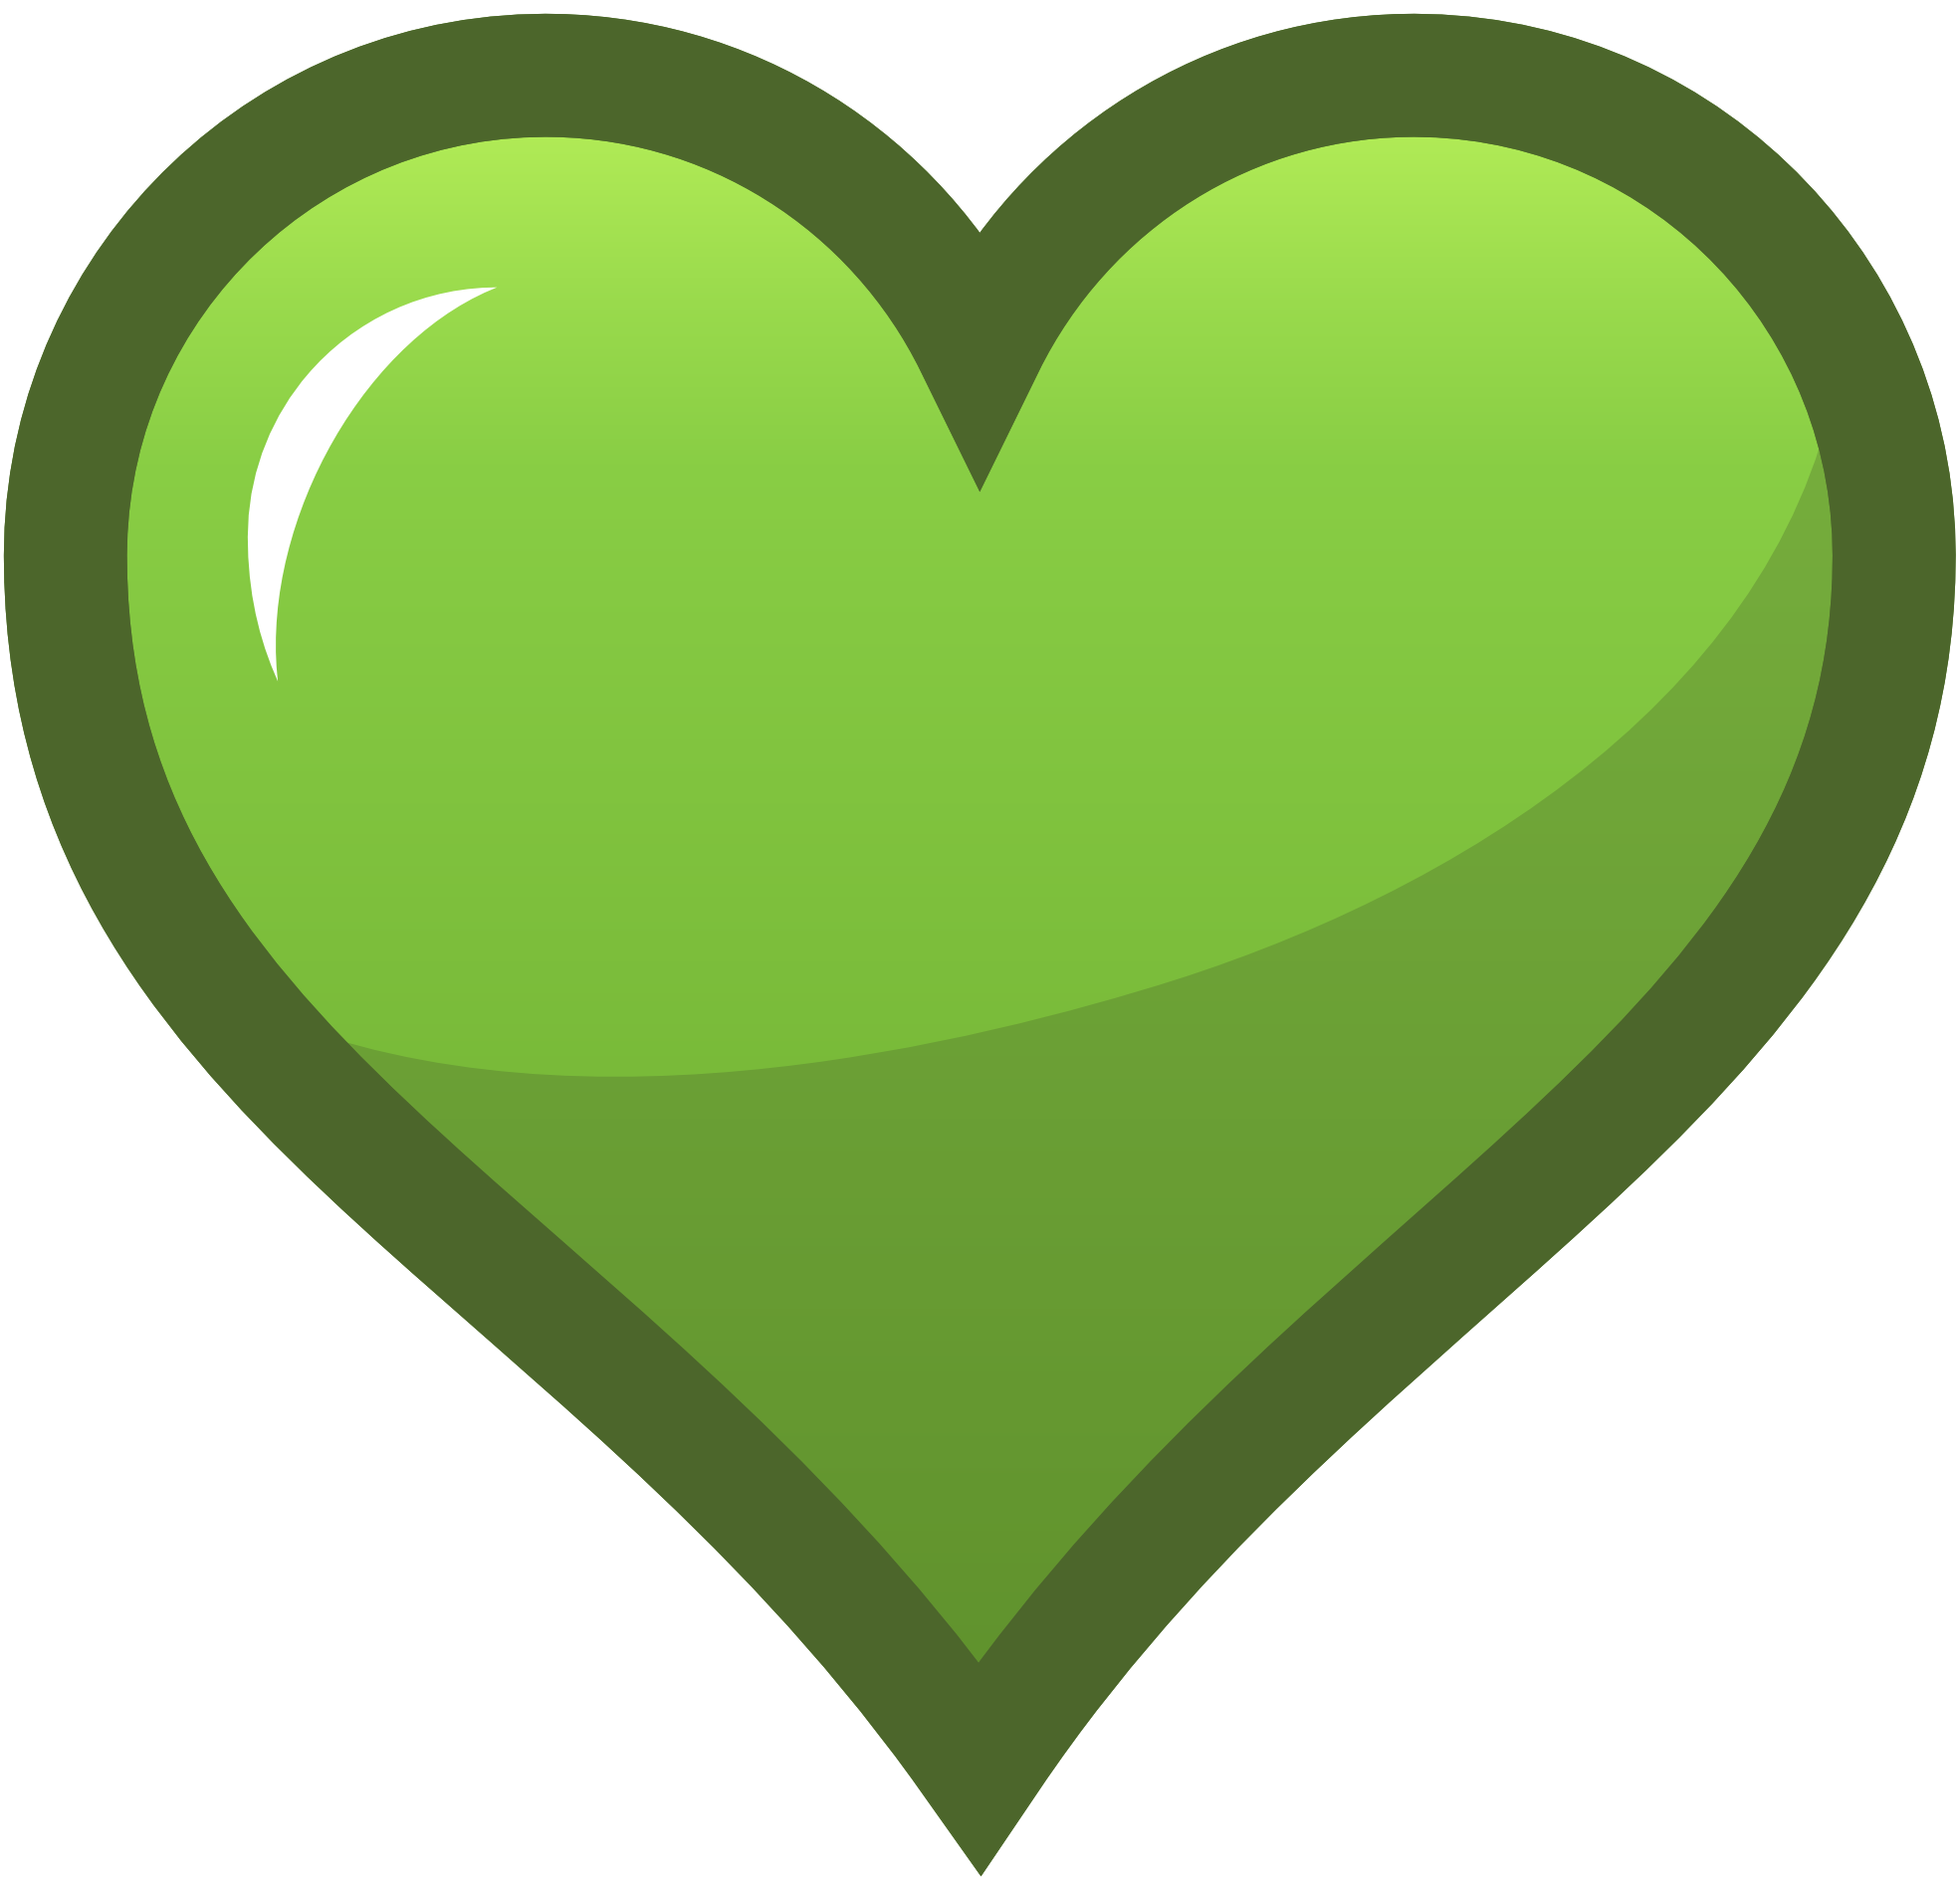 Lime Green Hearts - ClipArt Best